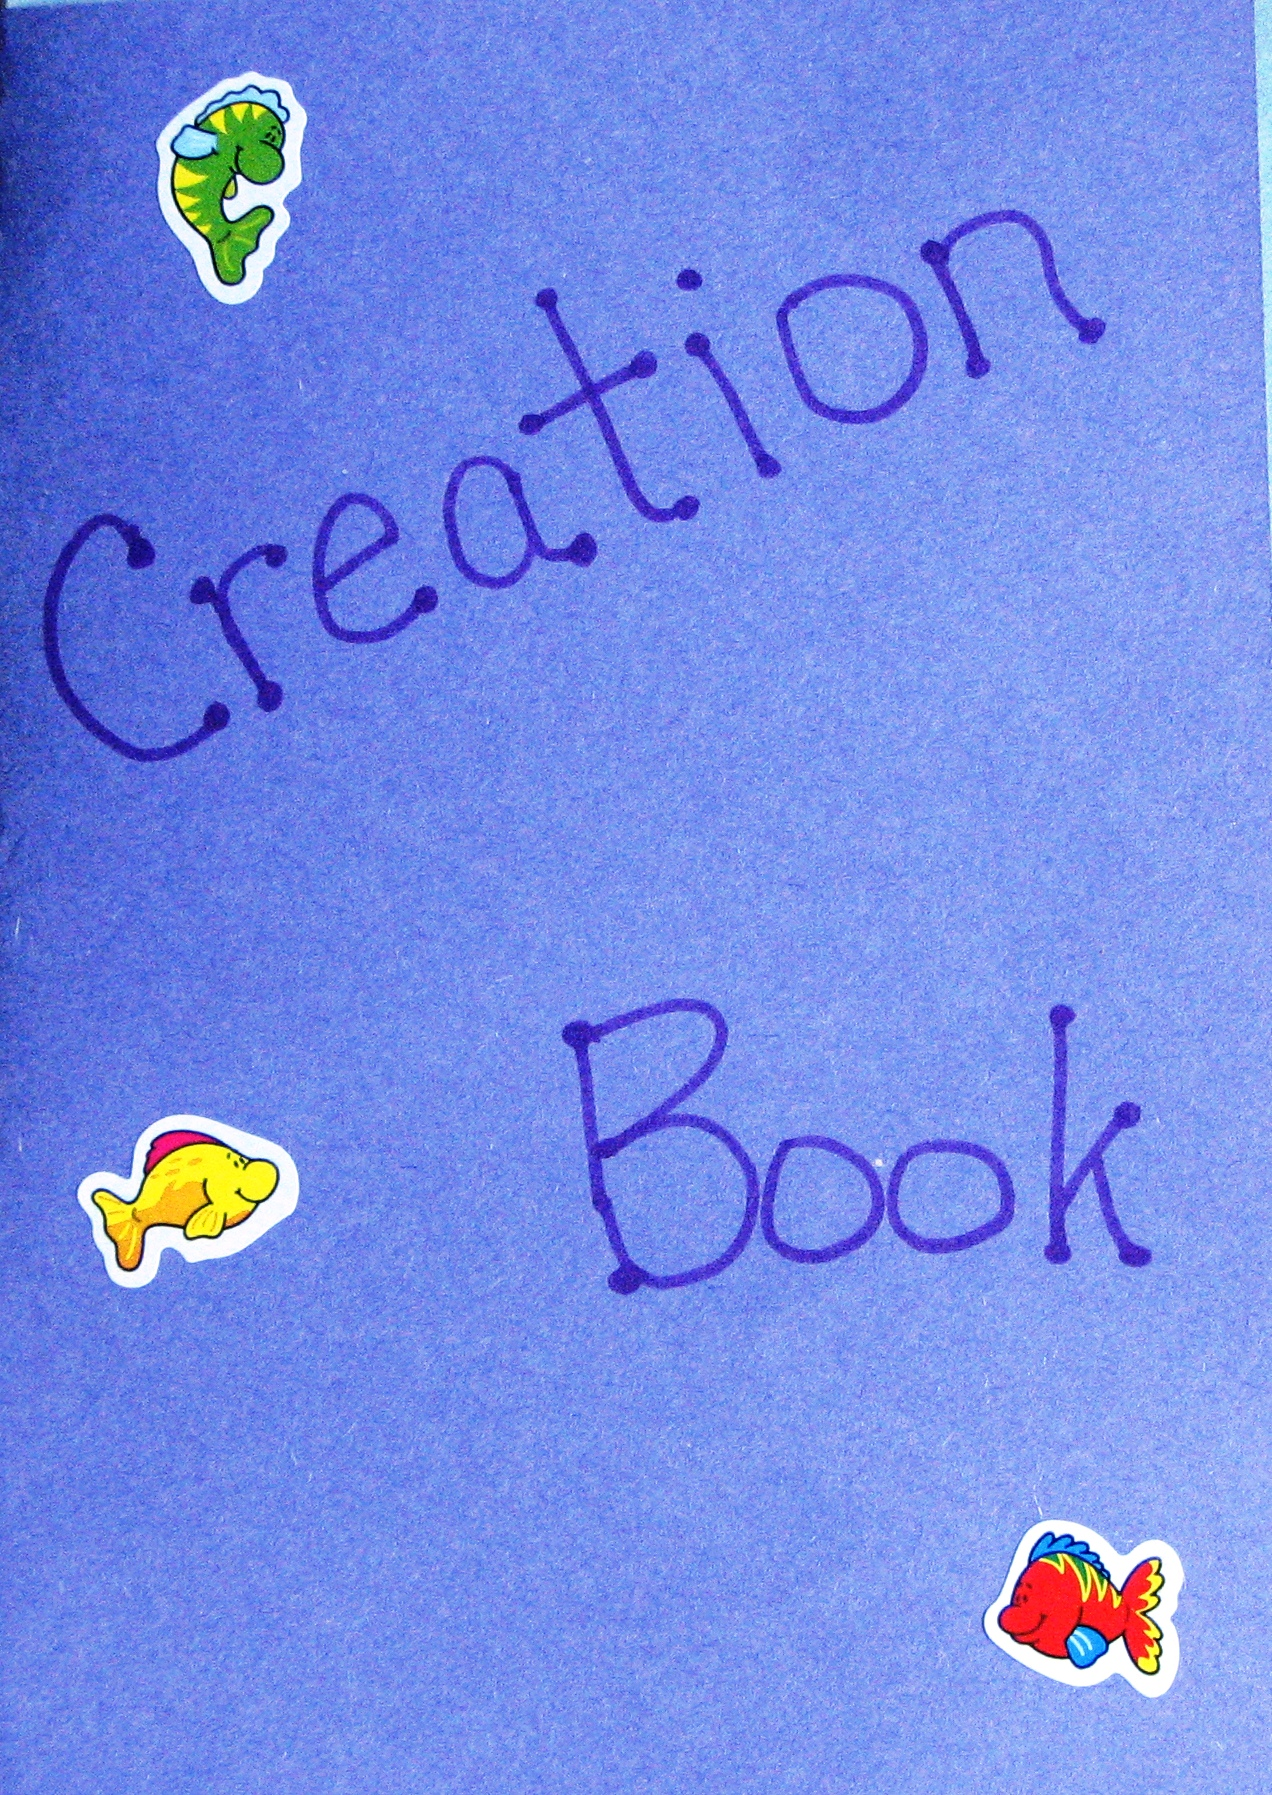 opinions on creation books